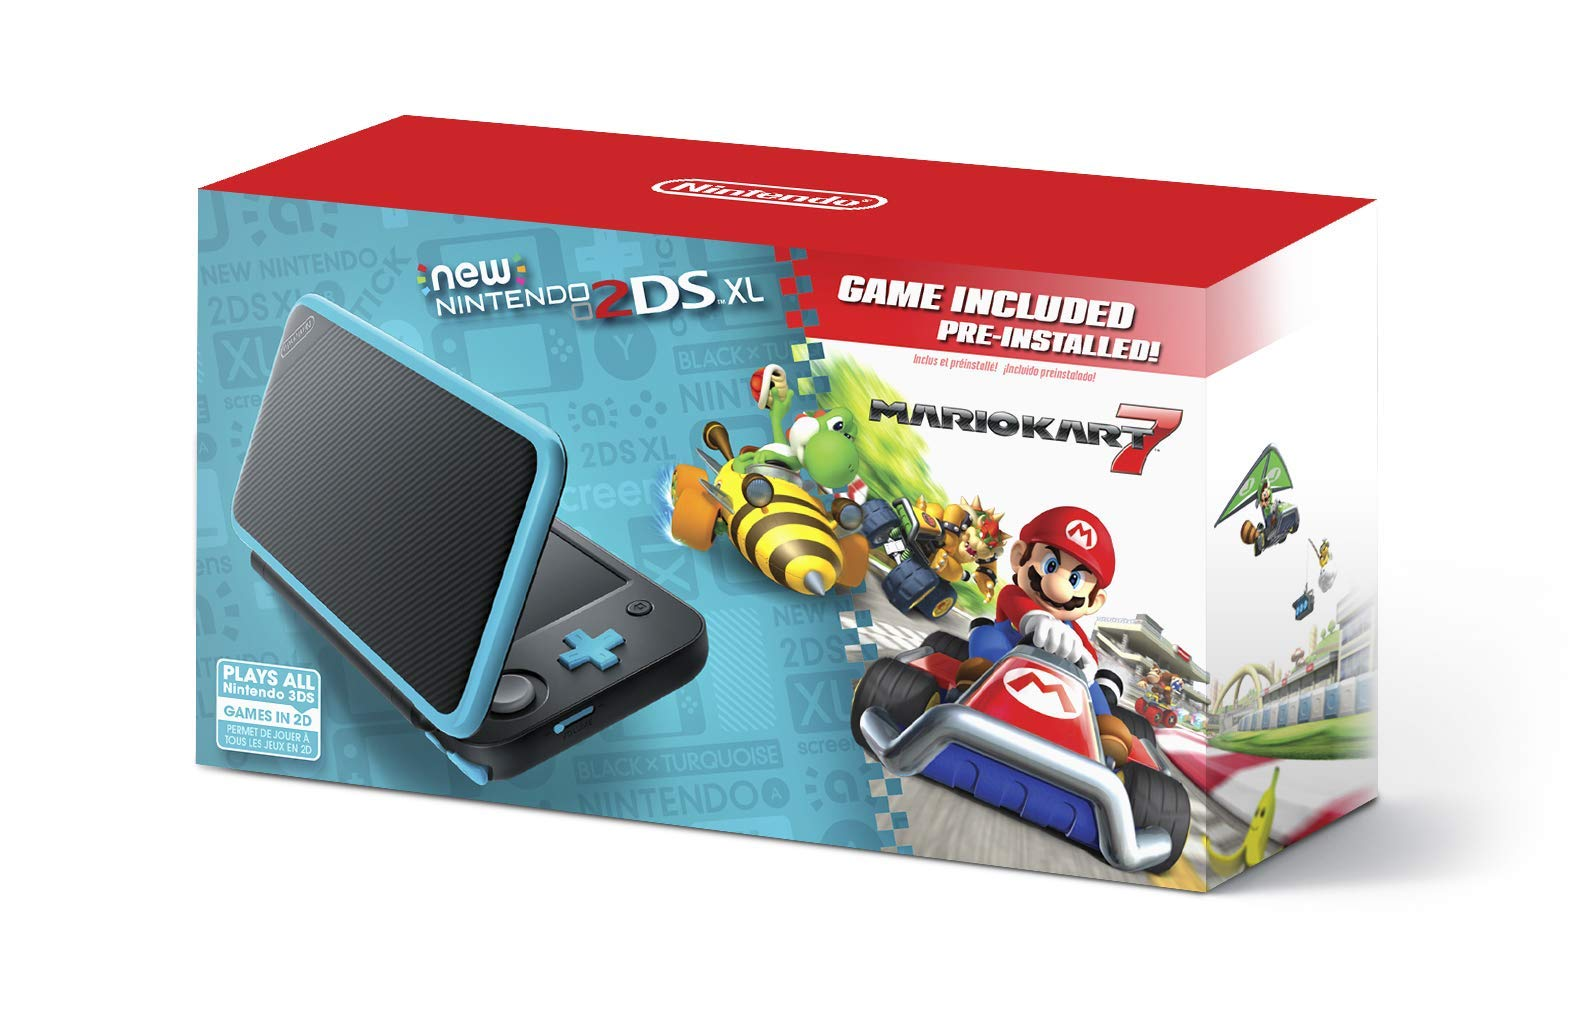 New Nintendo 2DS XL - Black + Turquoise With Mario Kart 7 Pre-installed - Nintendo 2DS (Renewed) by Nintendo (Image #8)